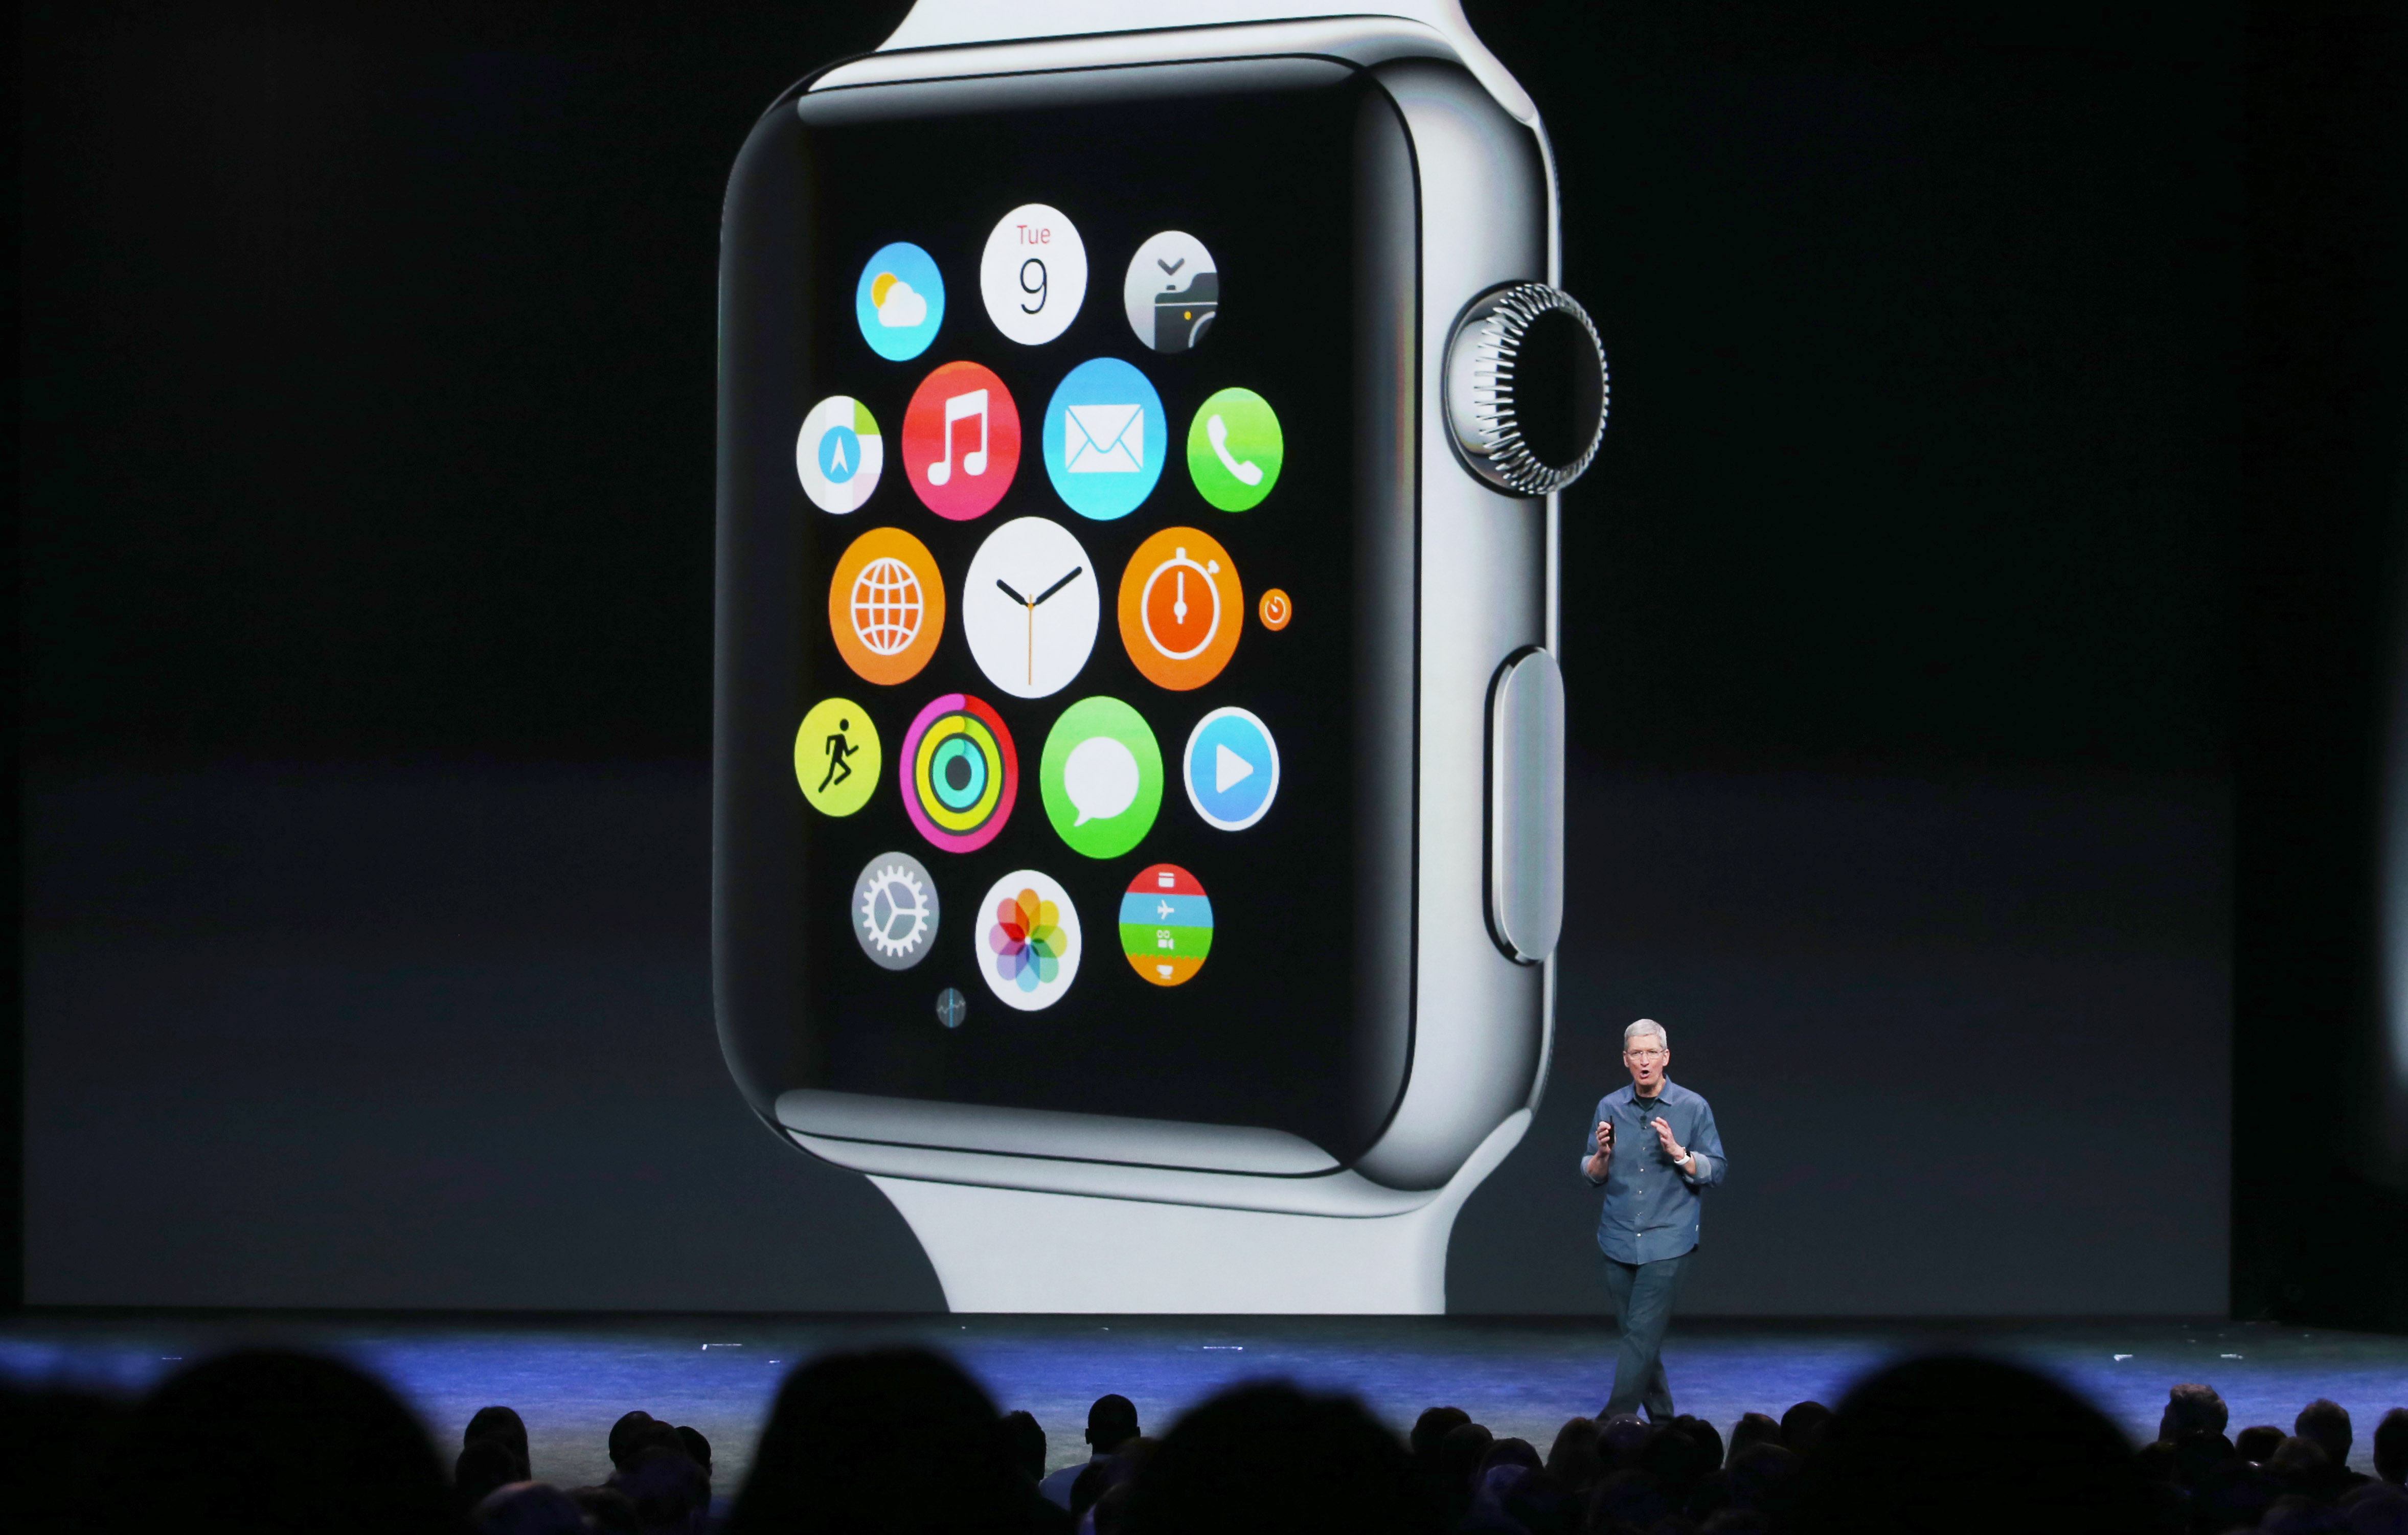 Apple CEO Tim Cook talks about the Apple Watch during an Apple special event at the Flint Center for the Performing Arts on September 9, 2014 in Cupertino, California.